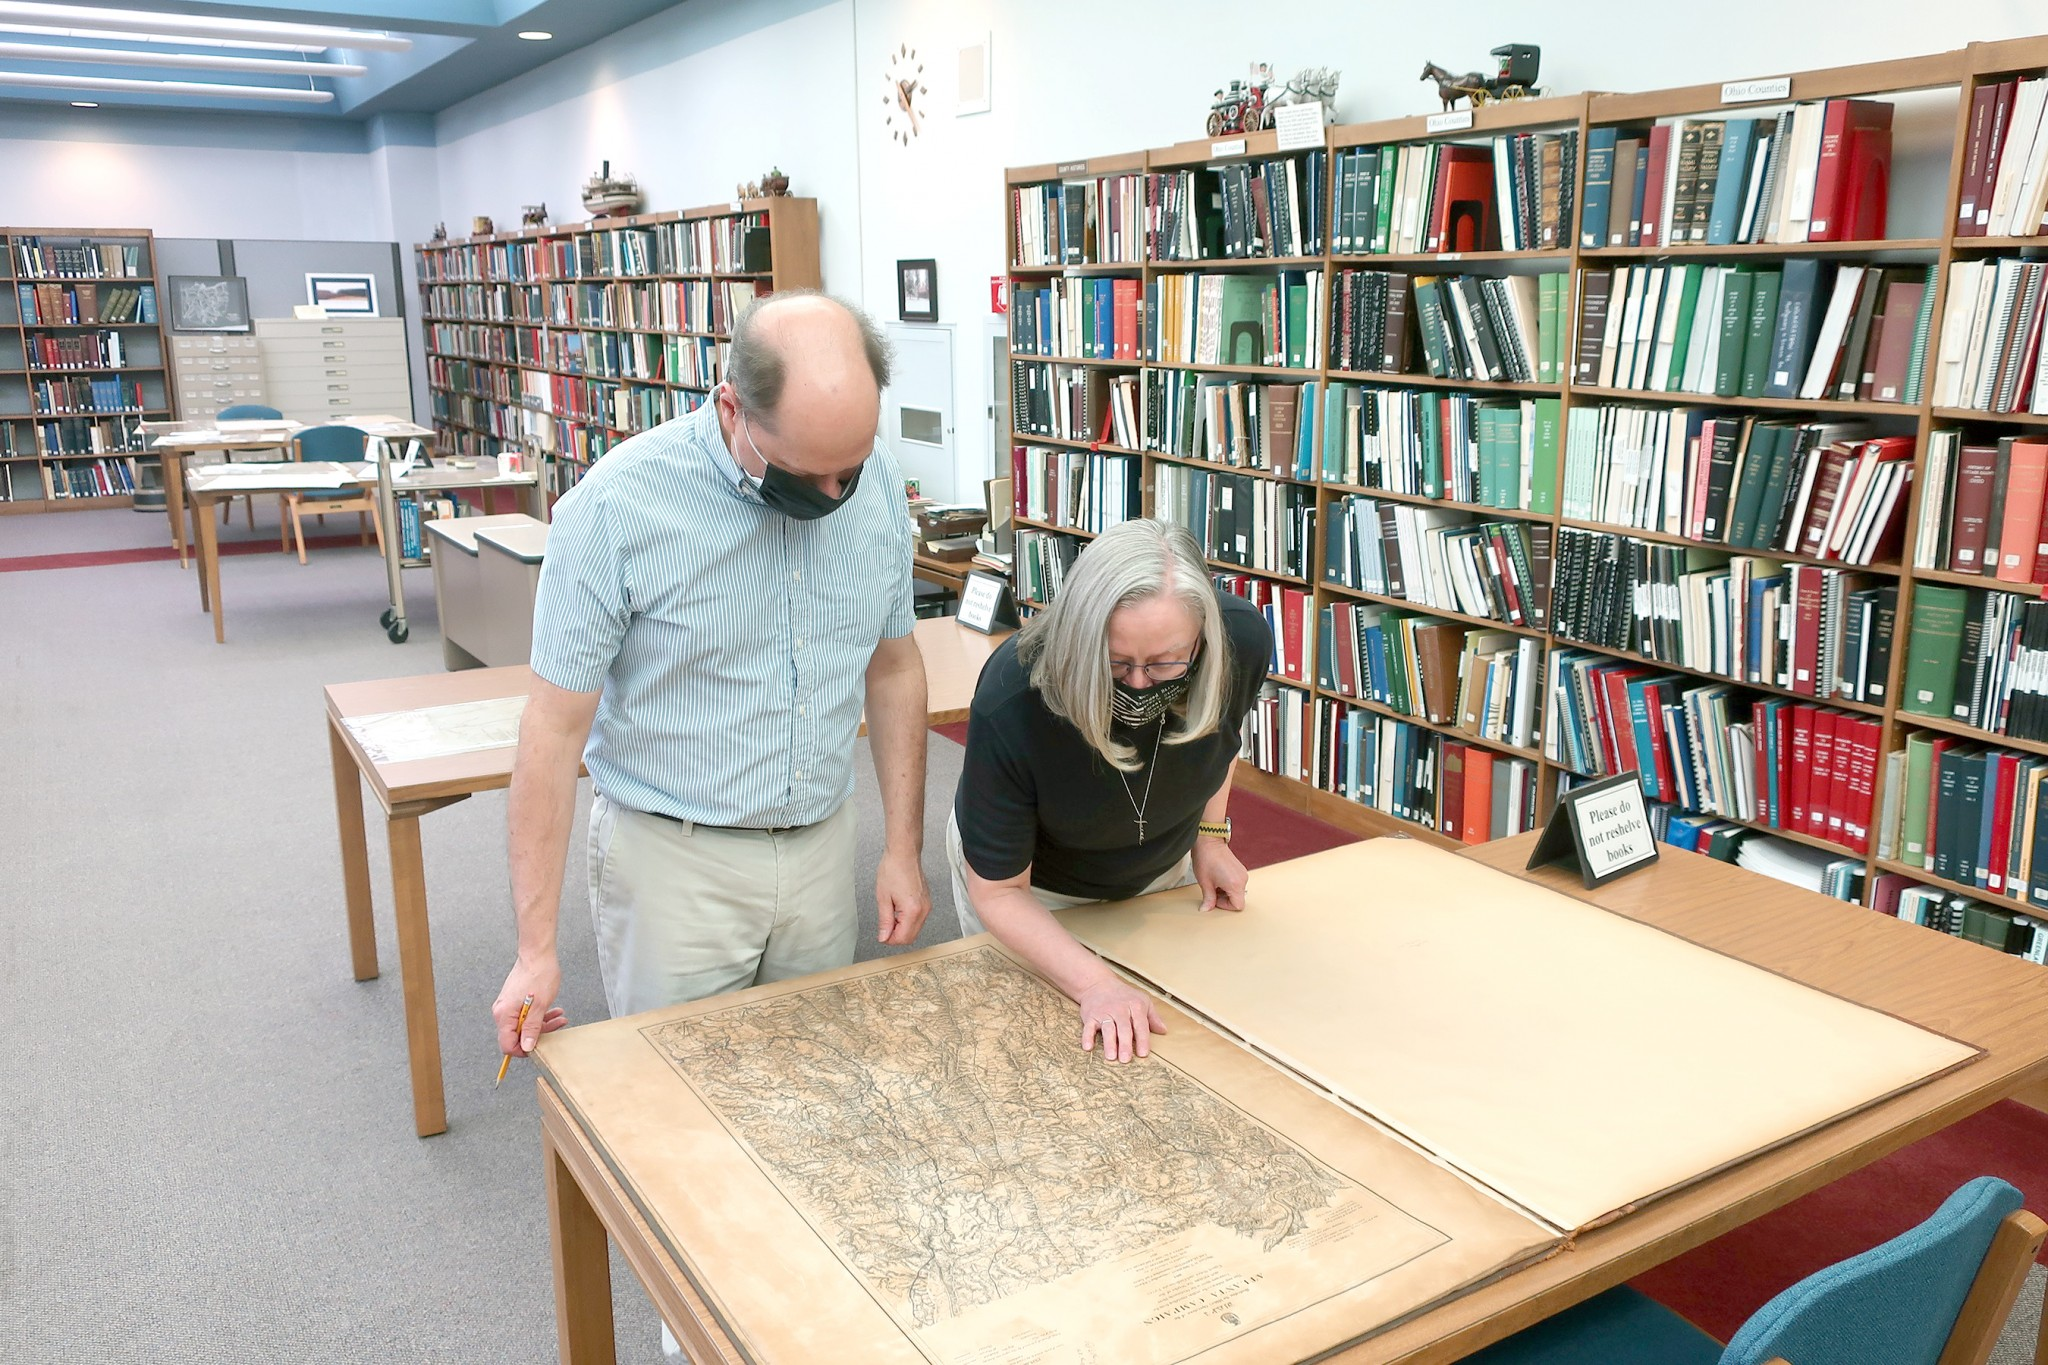 Head Librarian John Ransom, (left), and Librarian Pat Breno examine a book of historic maps of Civil War battles. This book is part of the map collections at the Hayes Presidential Library & Museums. (Submitted photo)